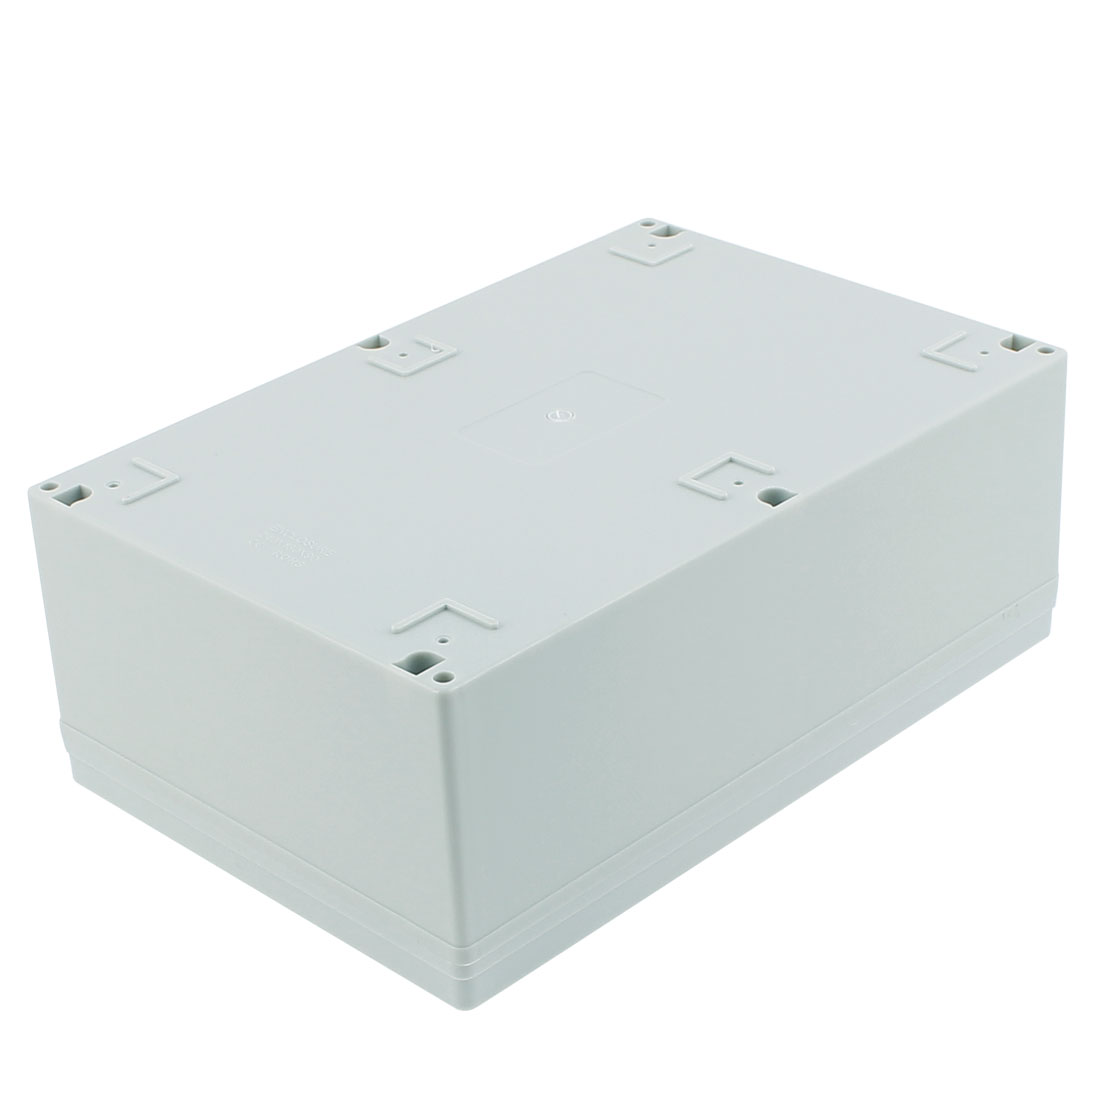 240-x-160-x-90mm-Waterproof-Junction-Box-DIY-Terminal-Connection-Box-Enclosure